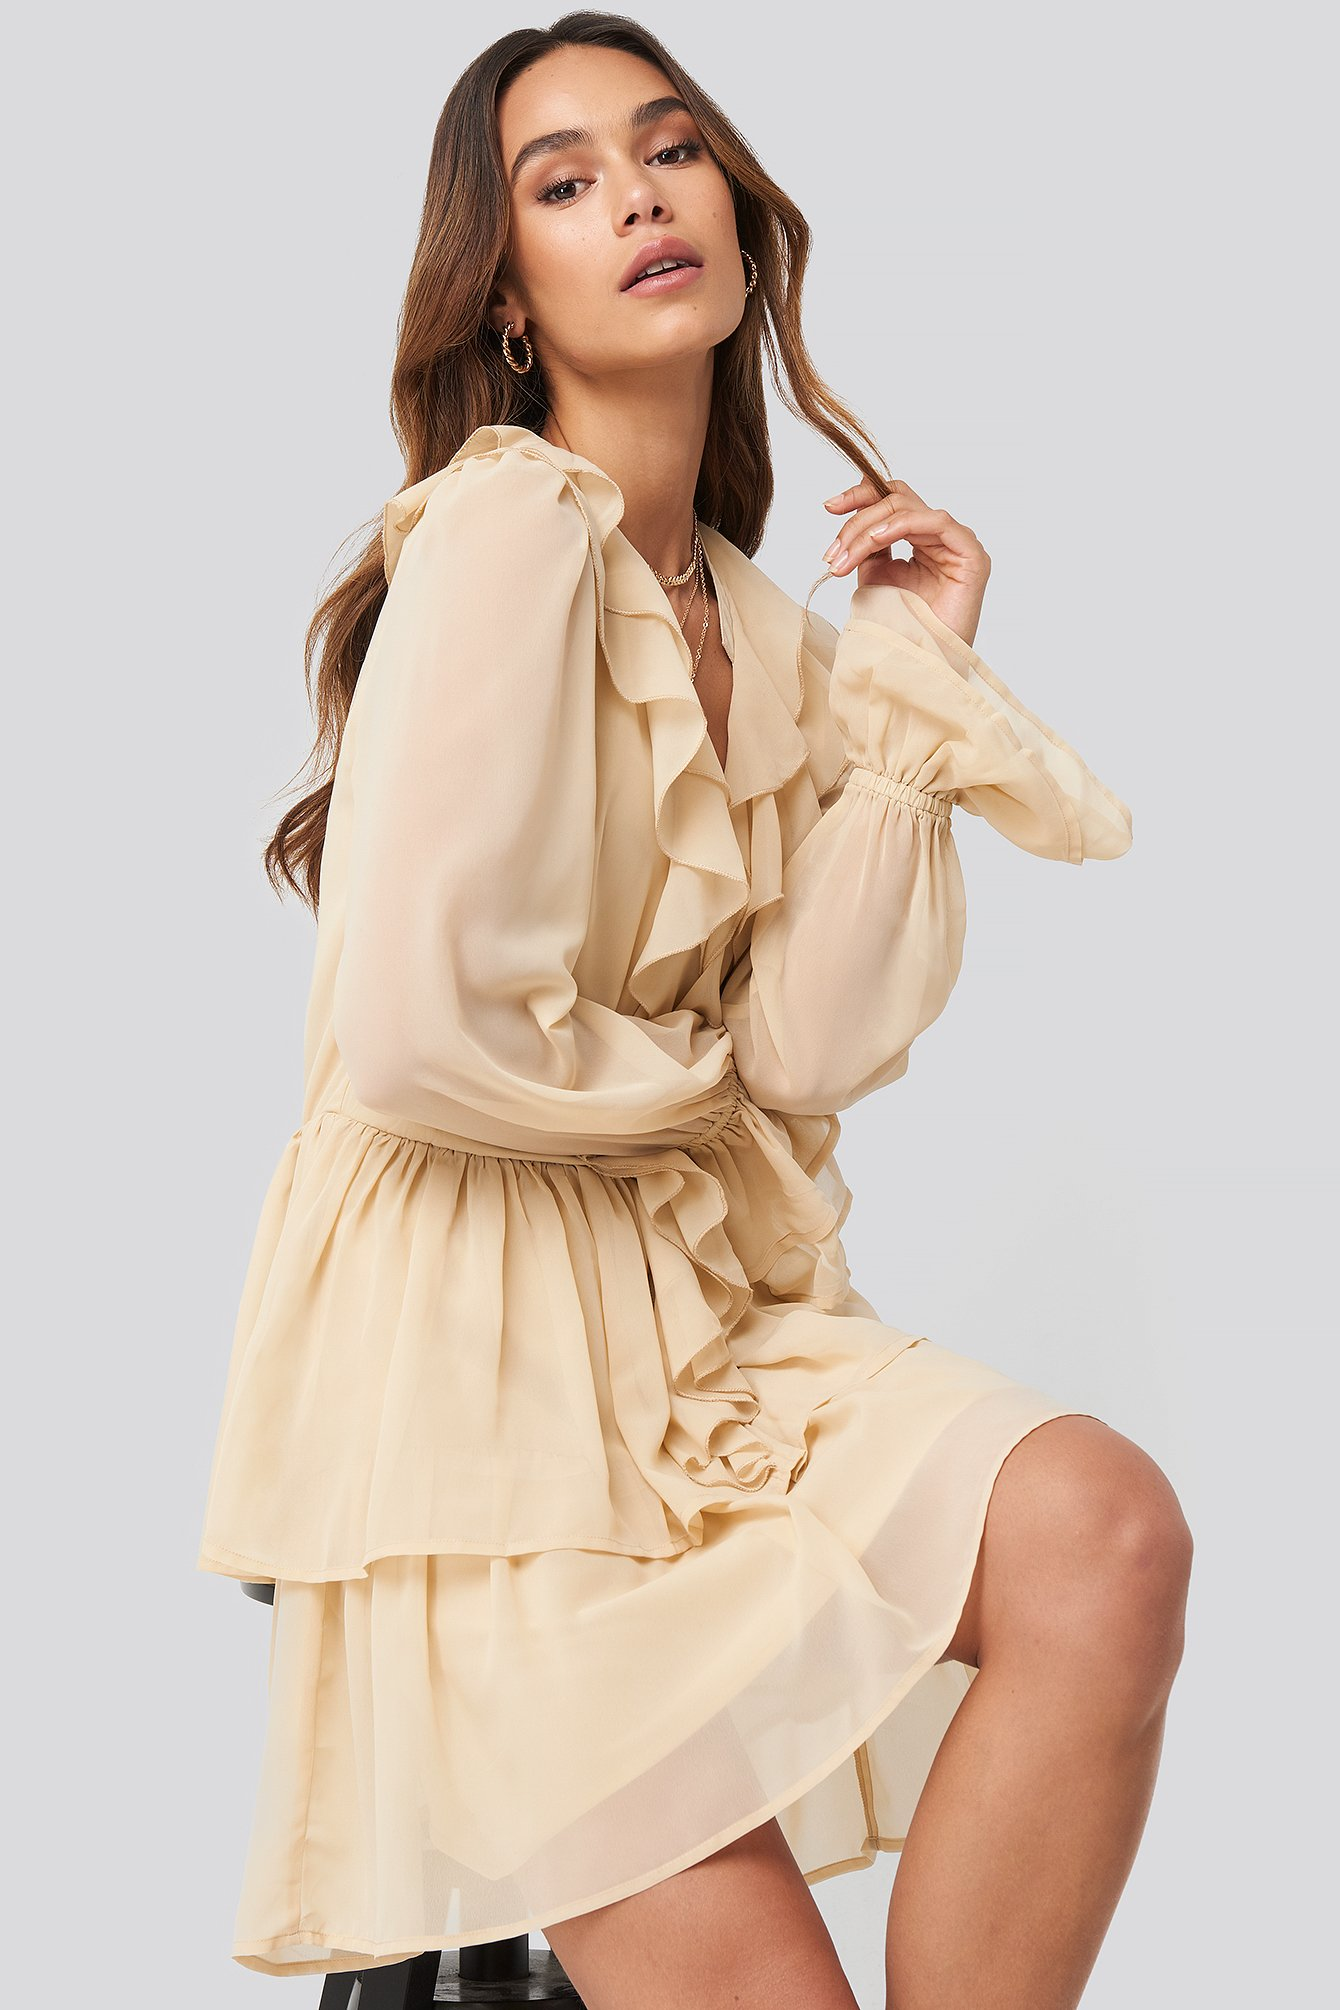 Queen Of Jetlags X Na-kd Chiffon Flounce Dress Beige